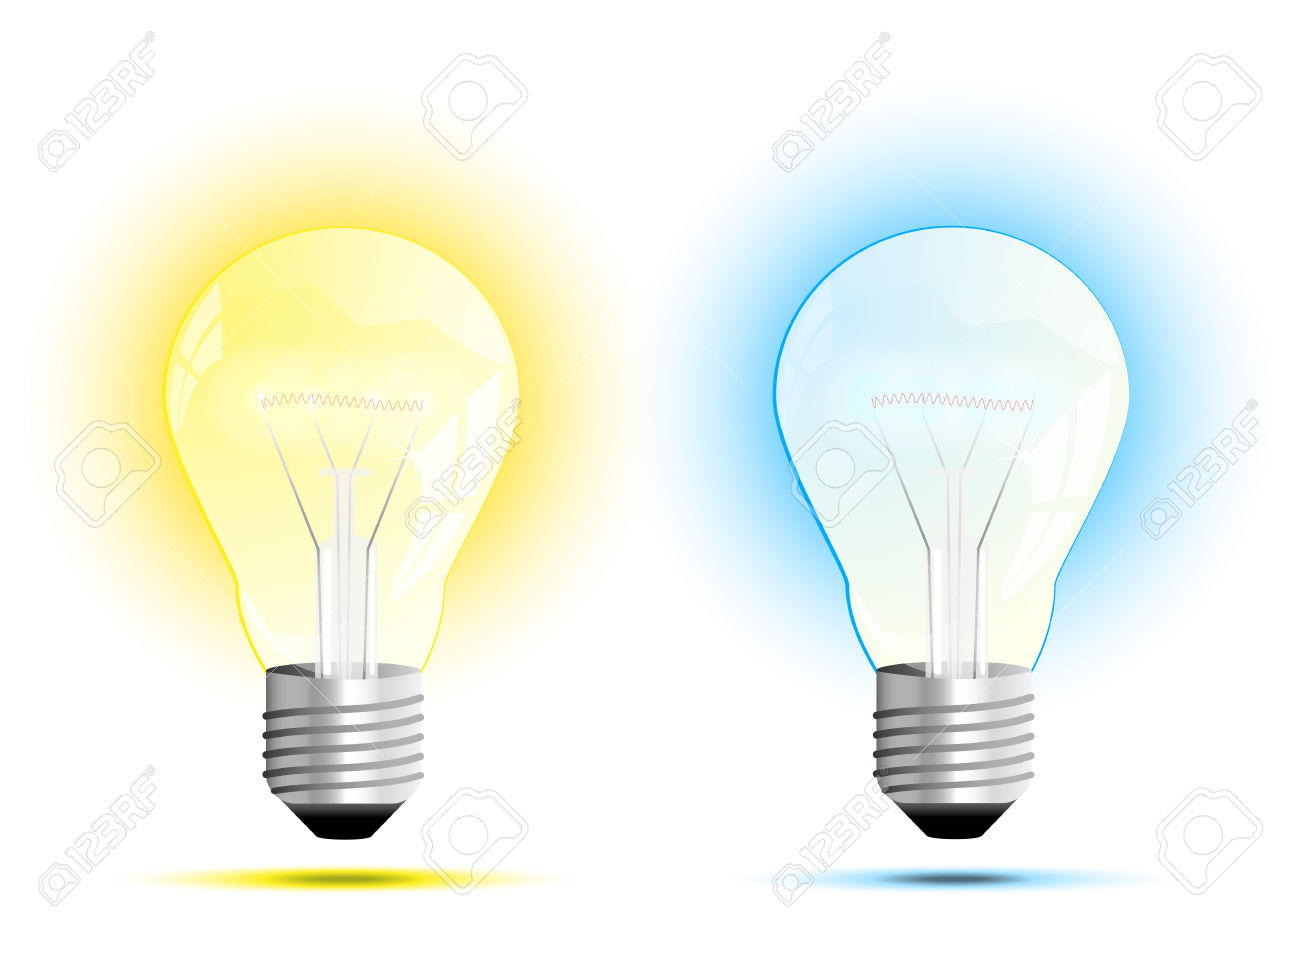 Incandescent Light Bulb Warm White And Cool White Light Vector.